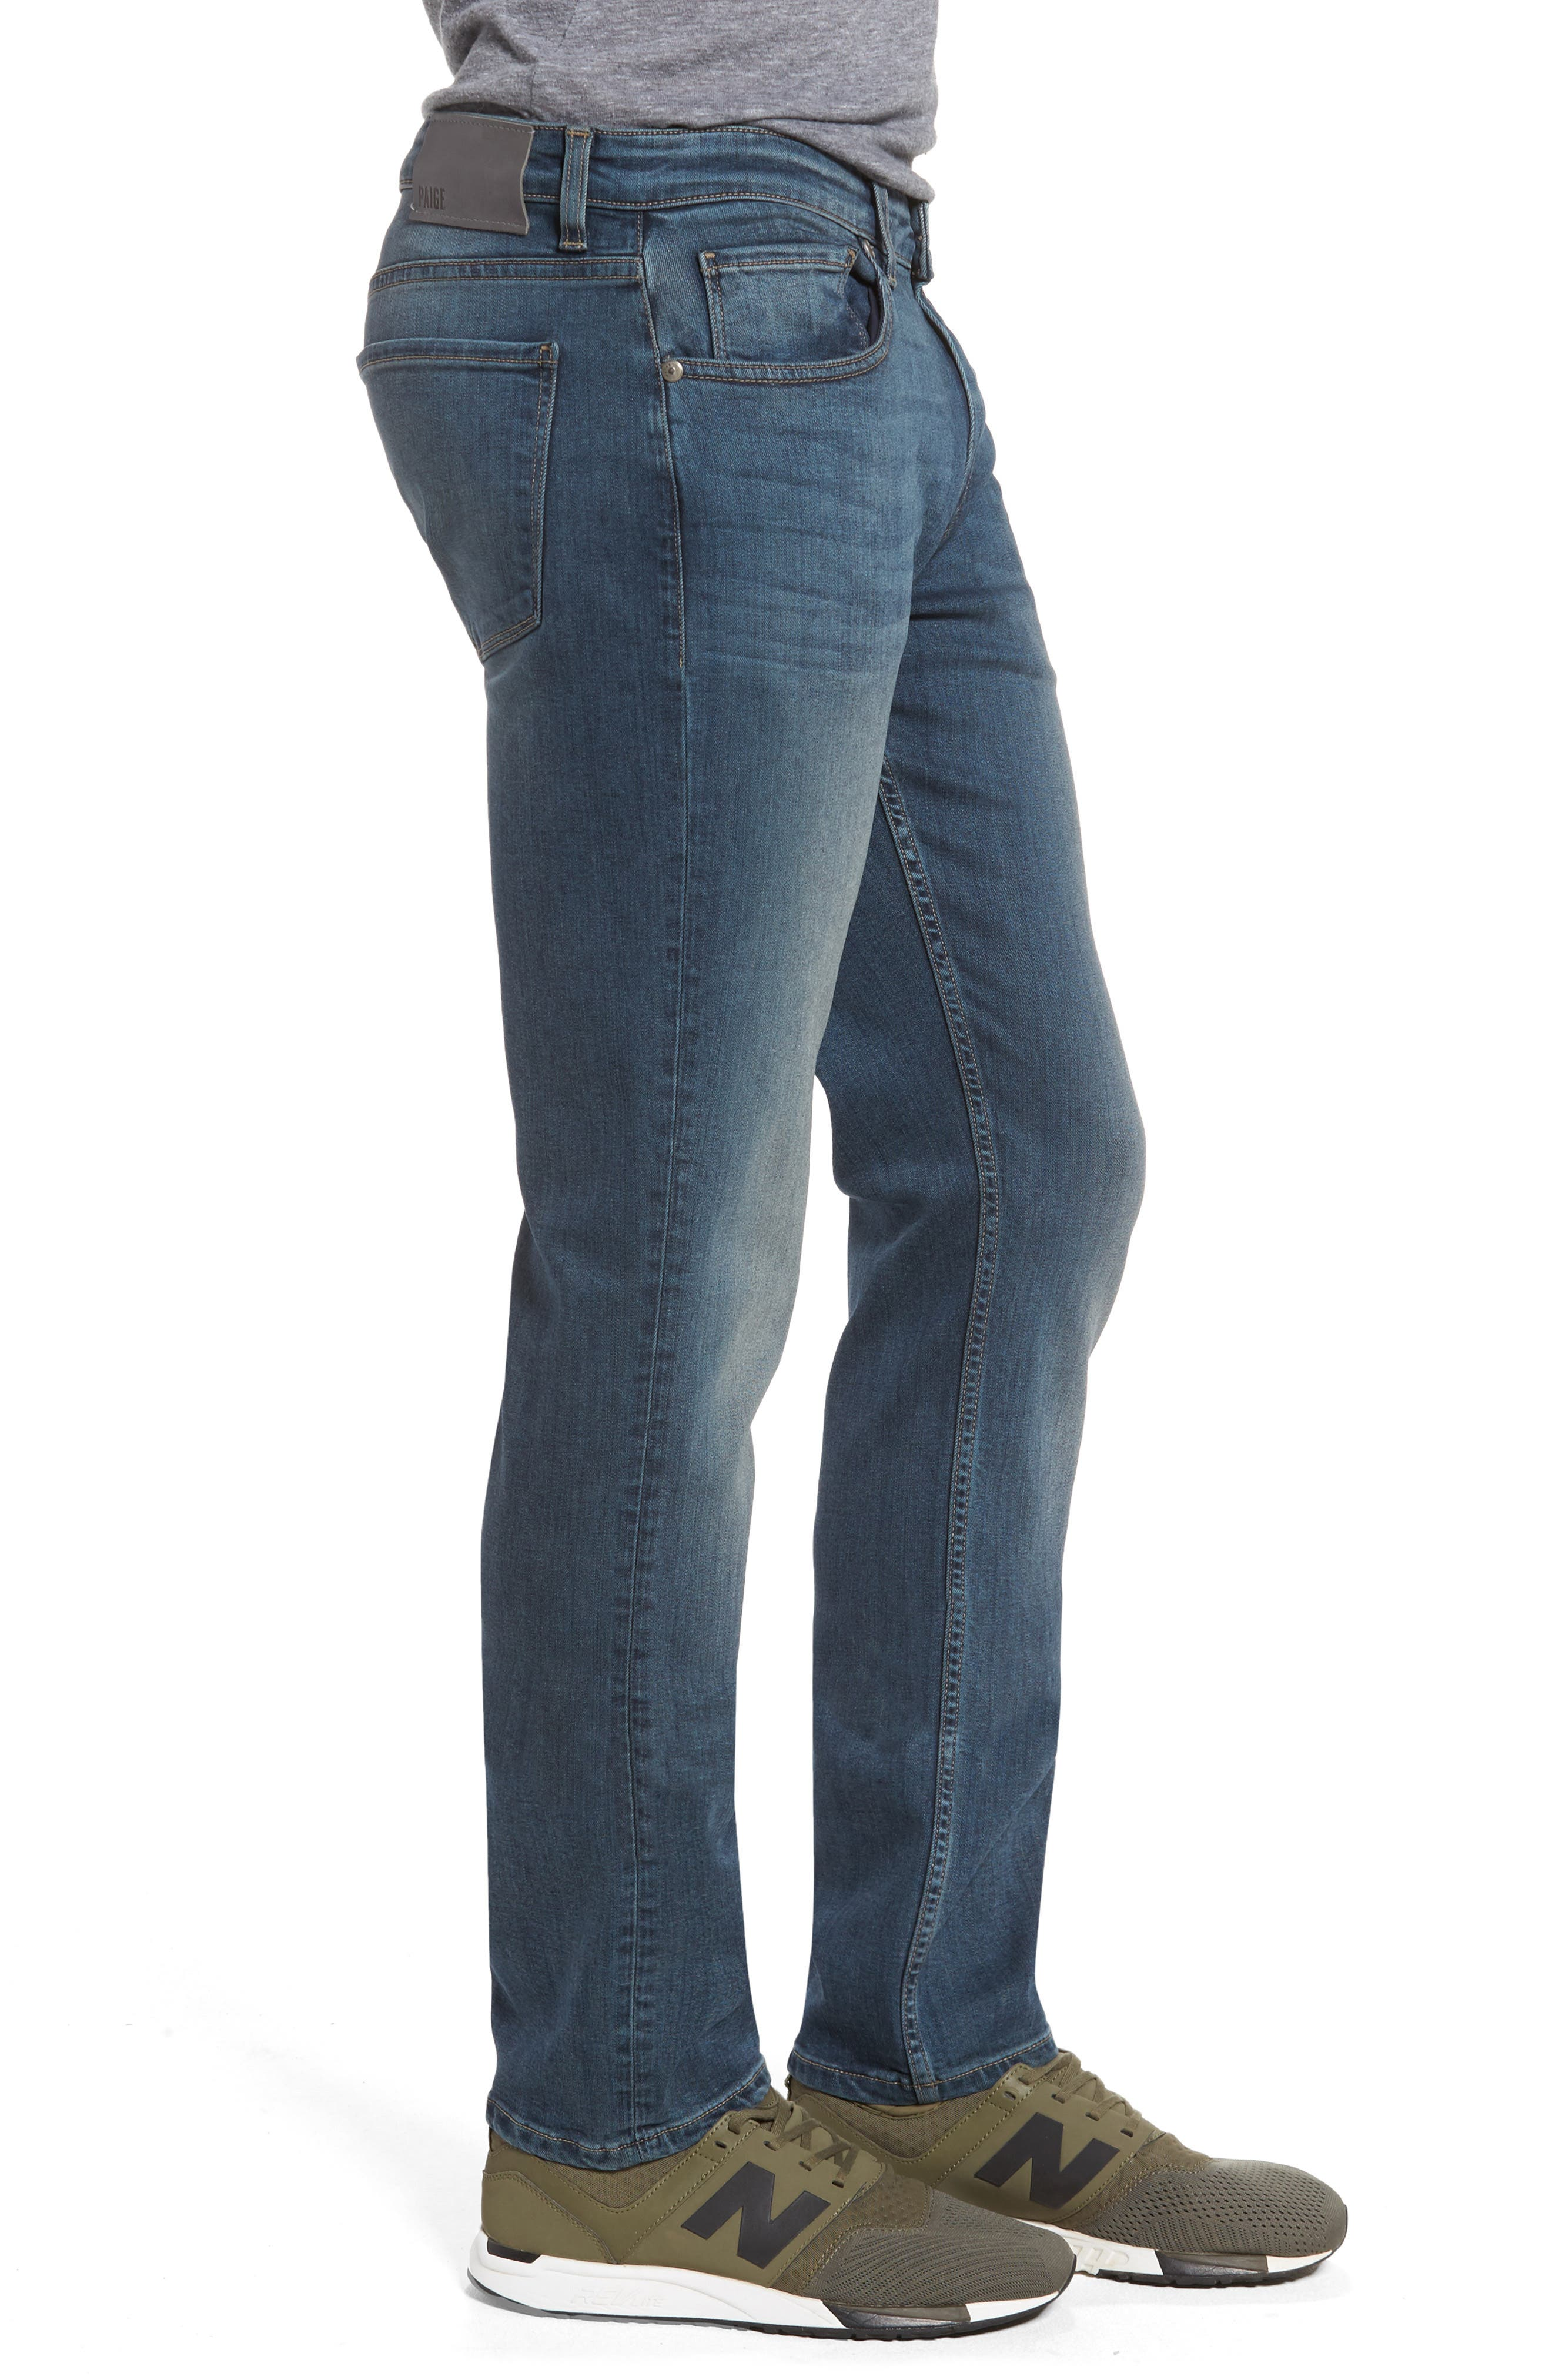 Transcend - Lennox Slim Fit Jeans,                             Alternate thumbnail 3, color,                             400